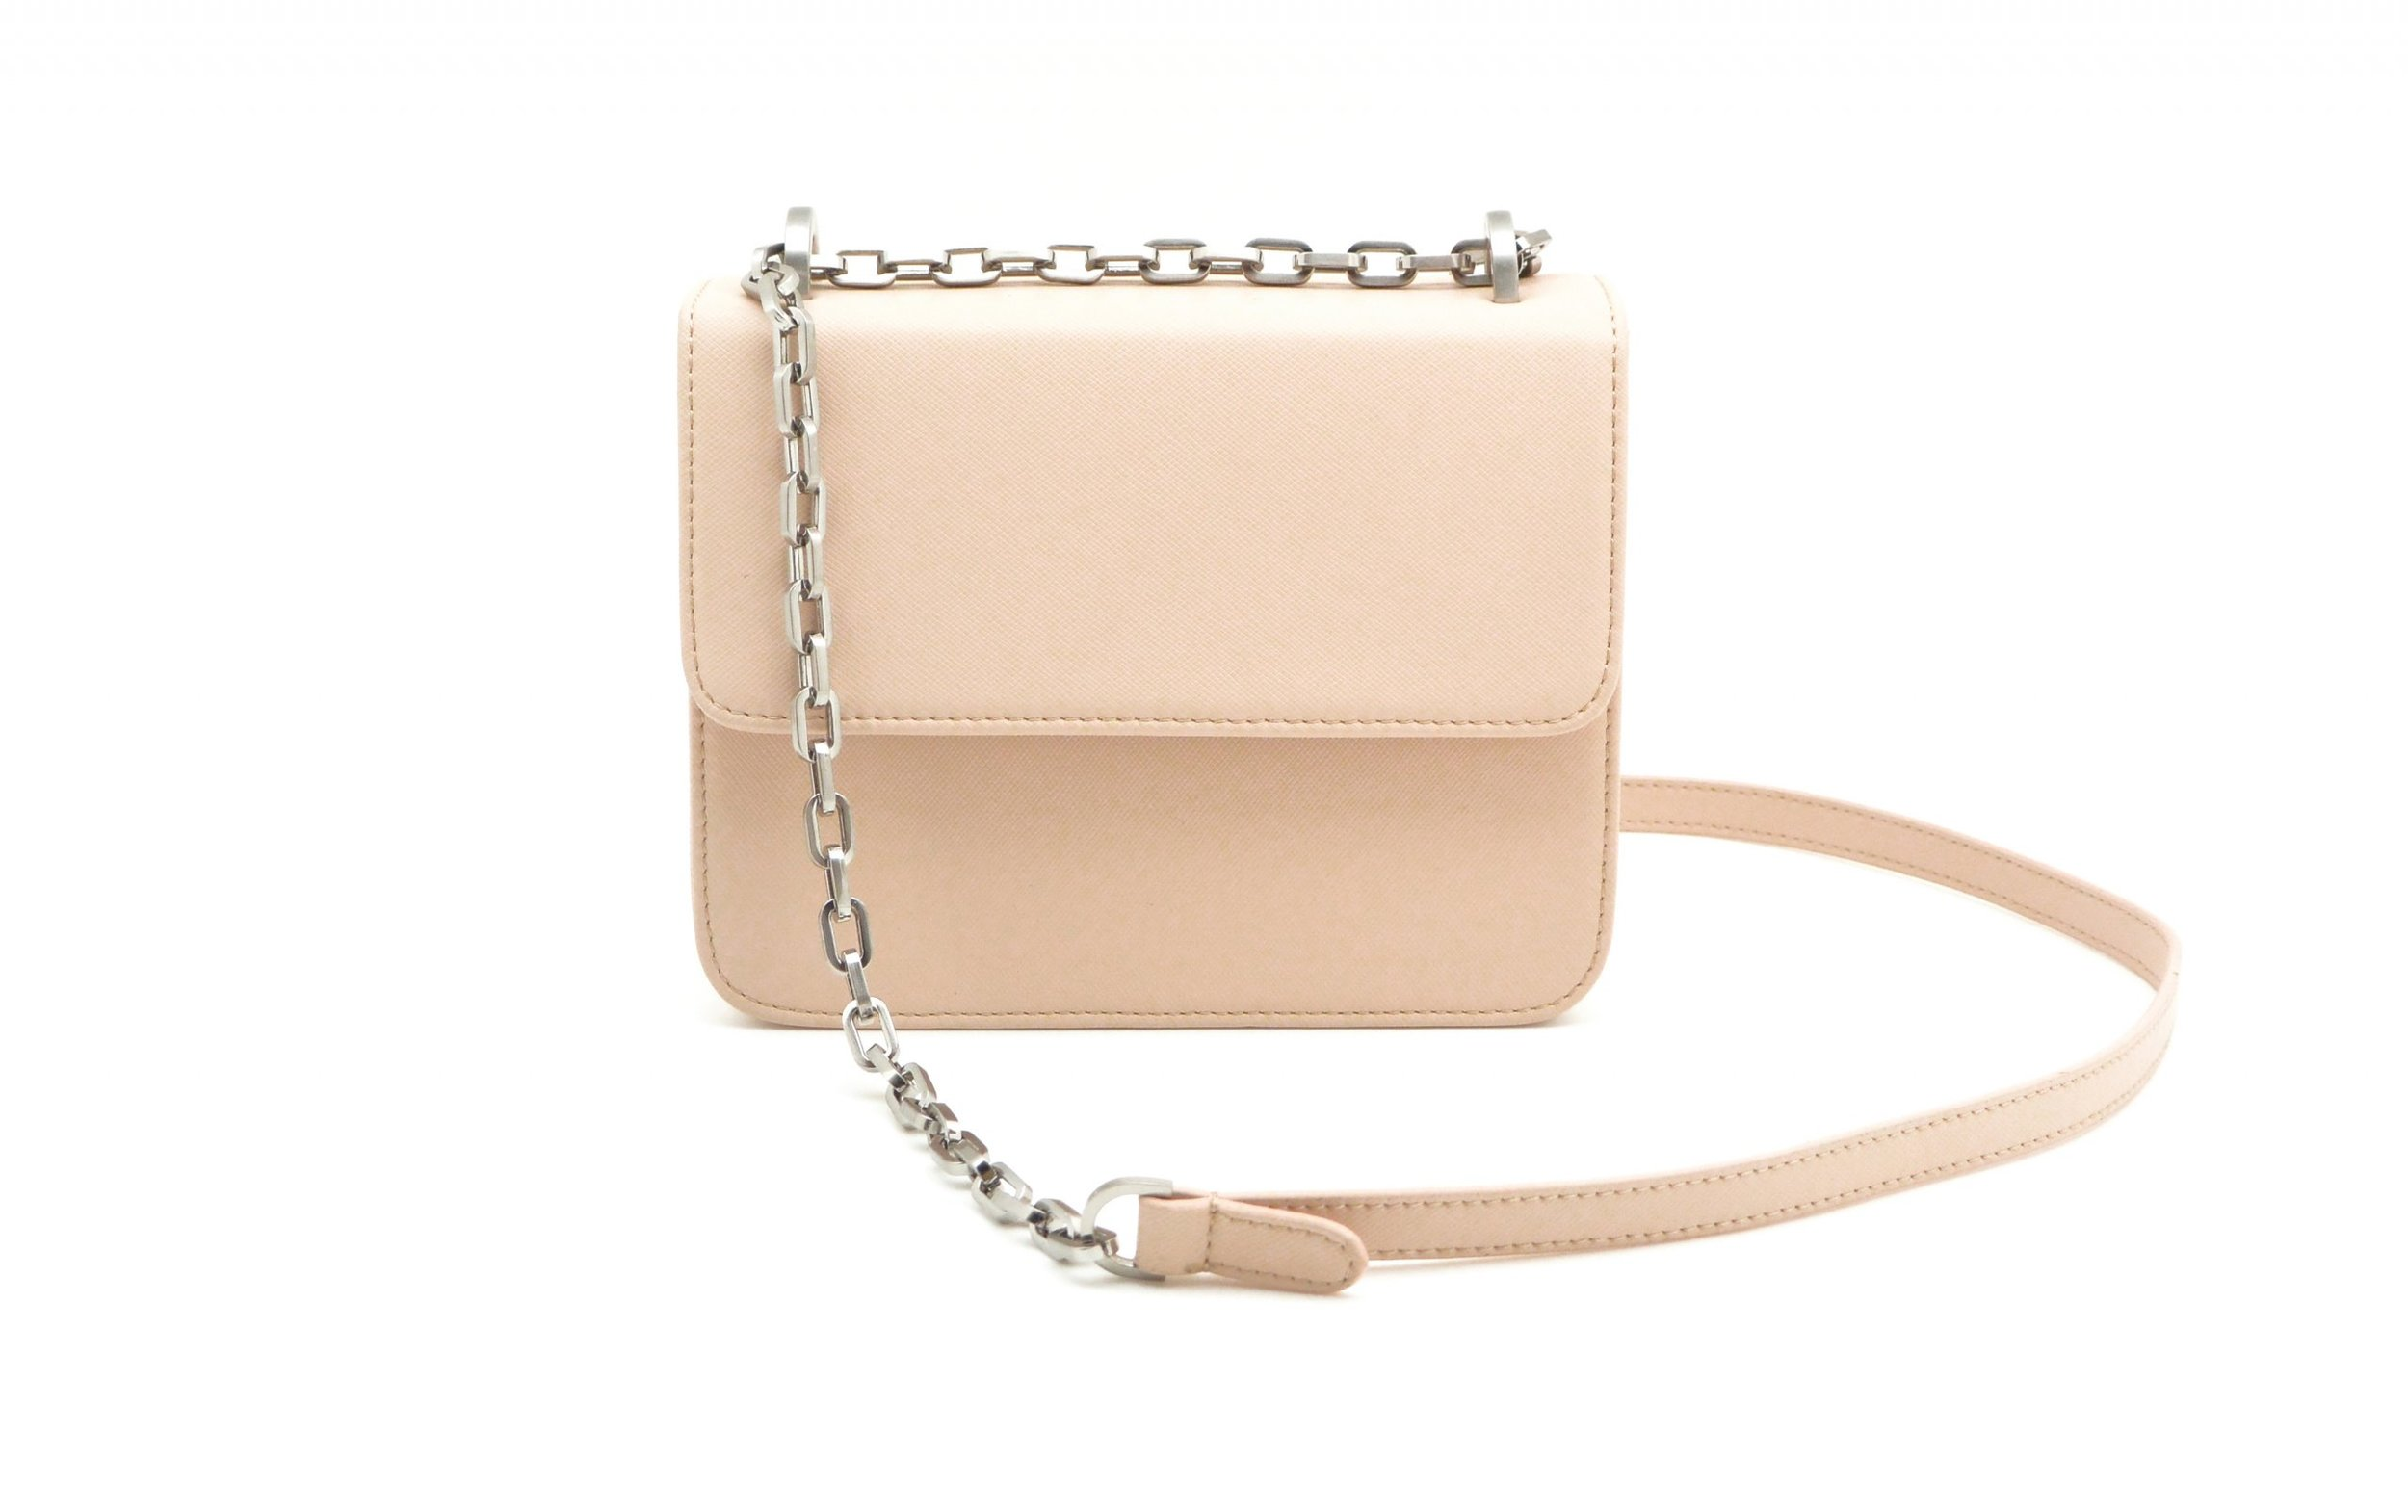 DENISE ROOBOL  MINI CRUISE BAG, NUDE STRIPE  €135